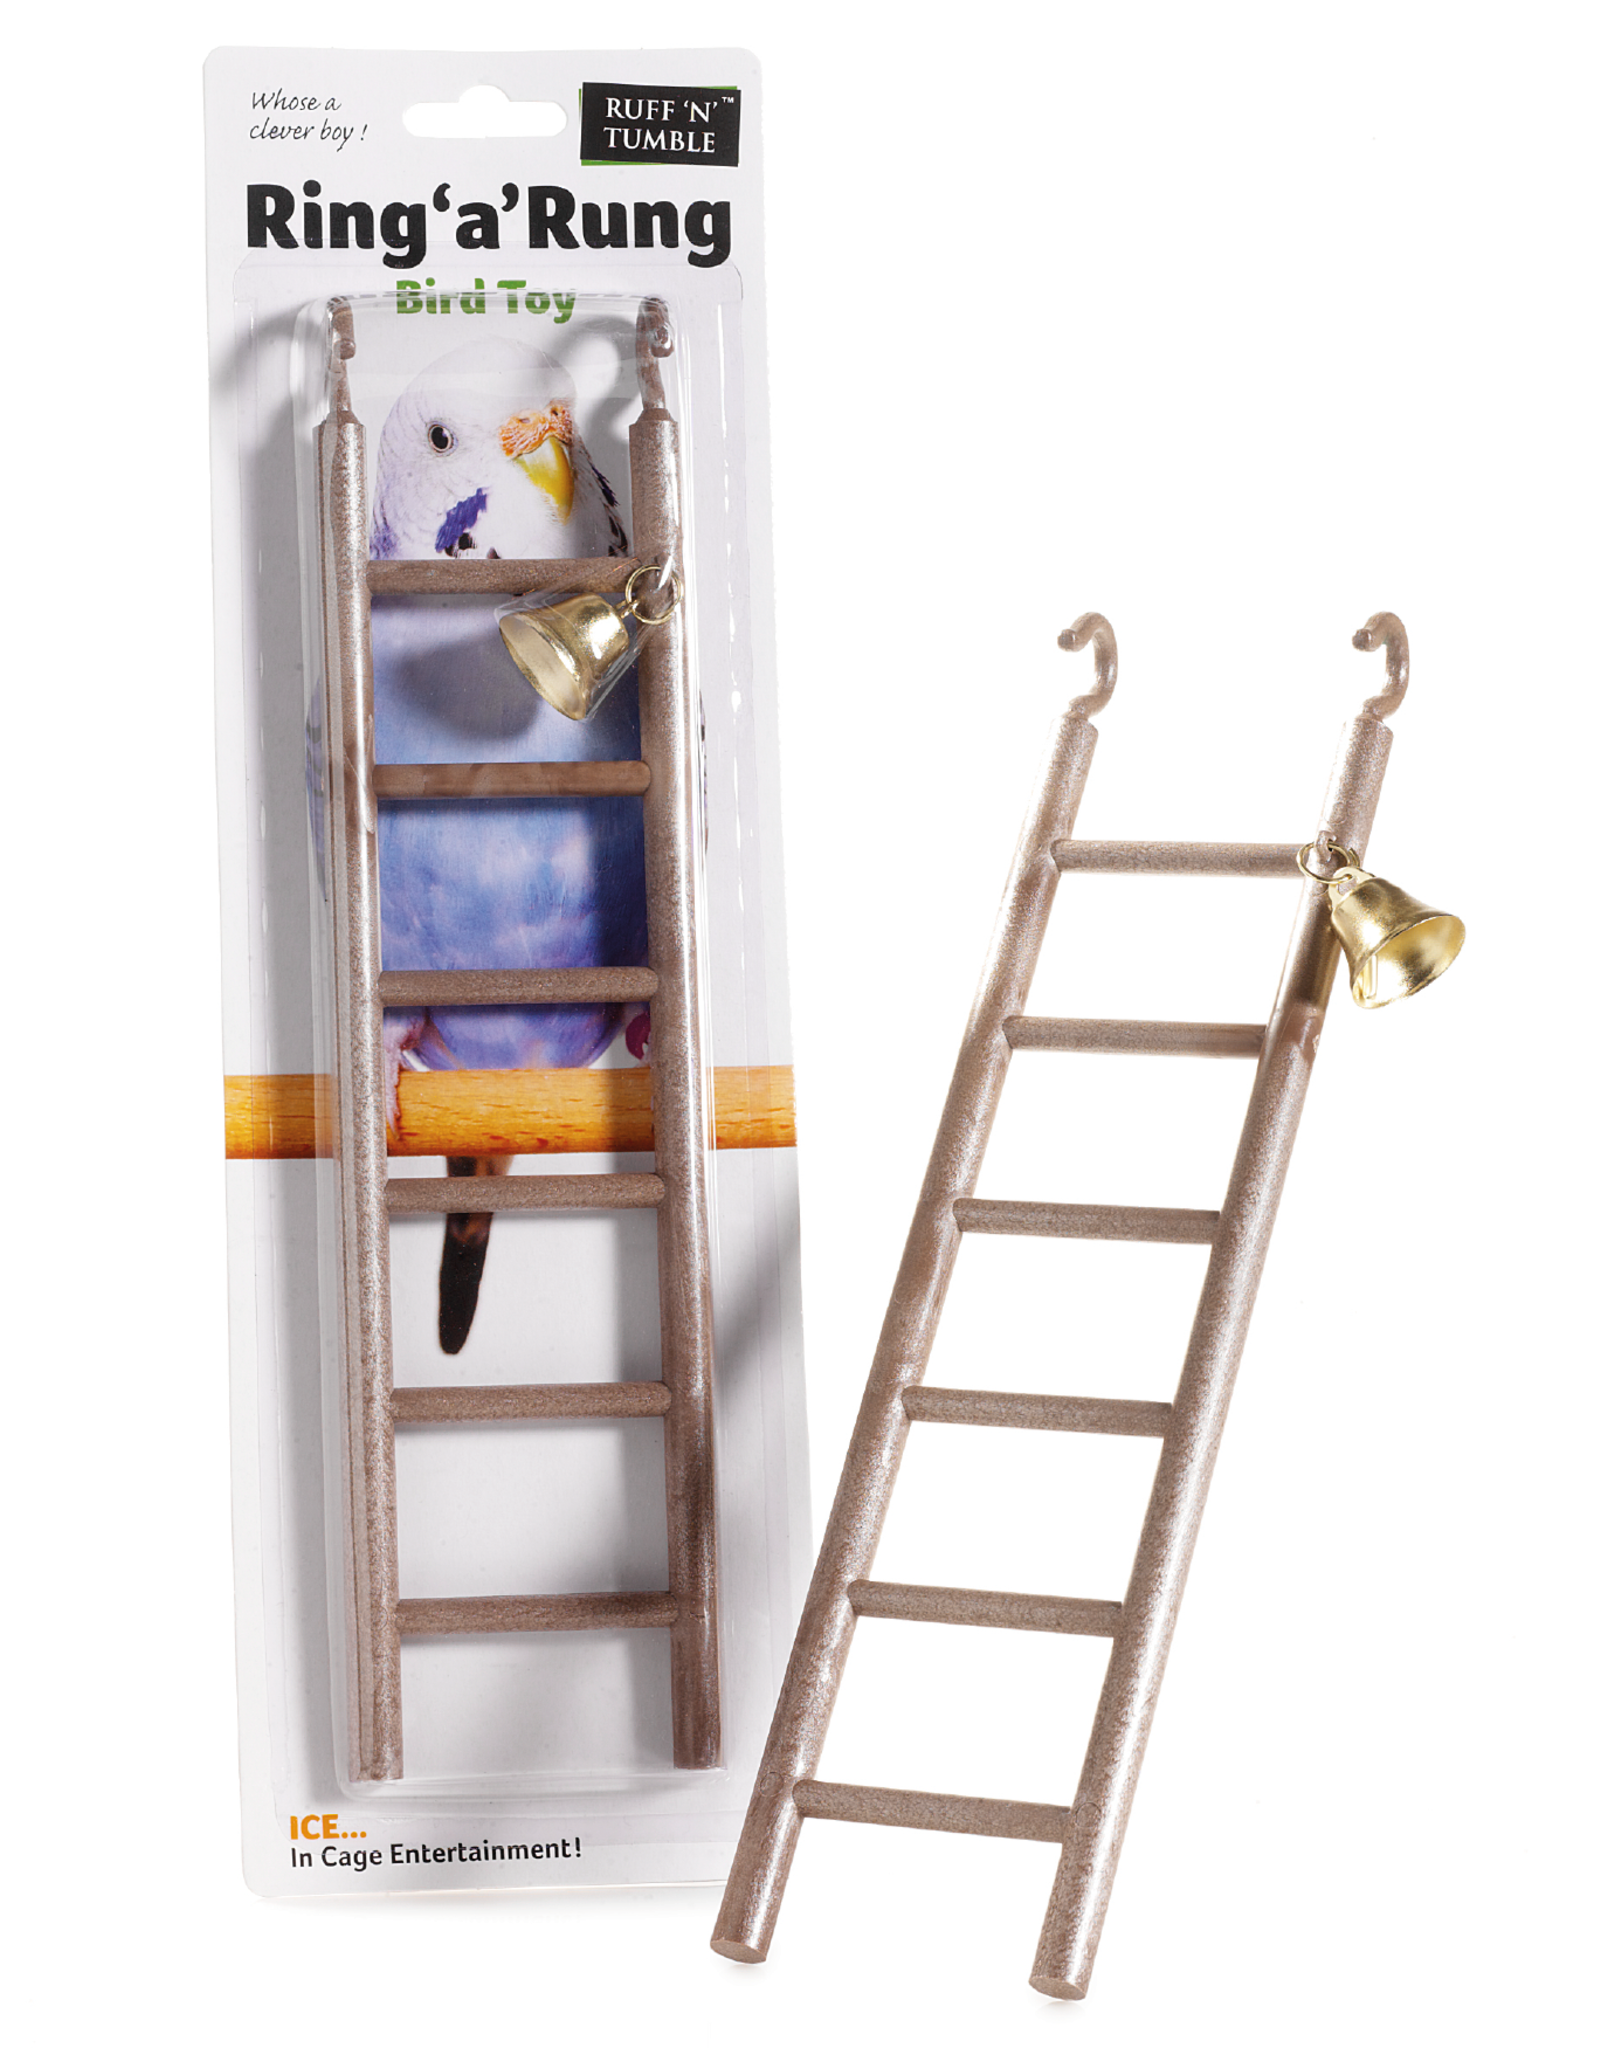 sharples Ring 'A' Rung Cage Bird Toy